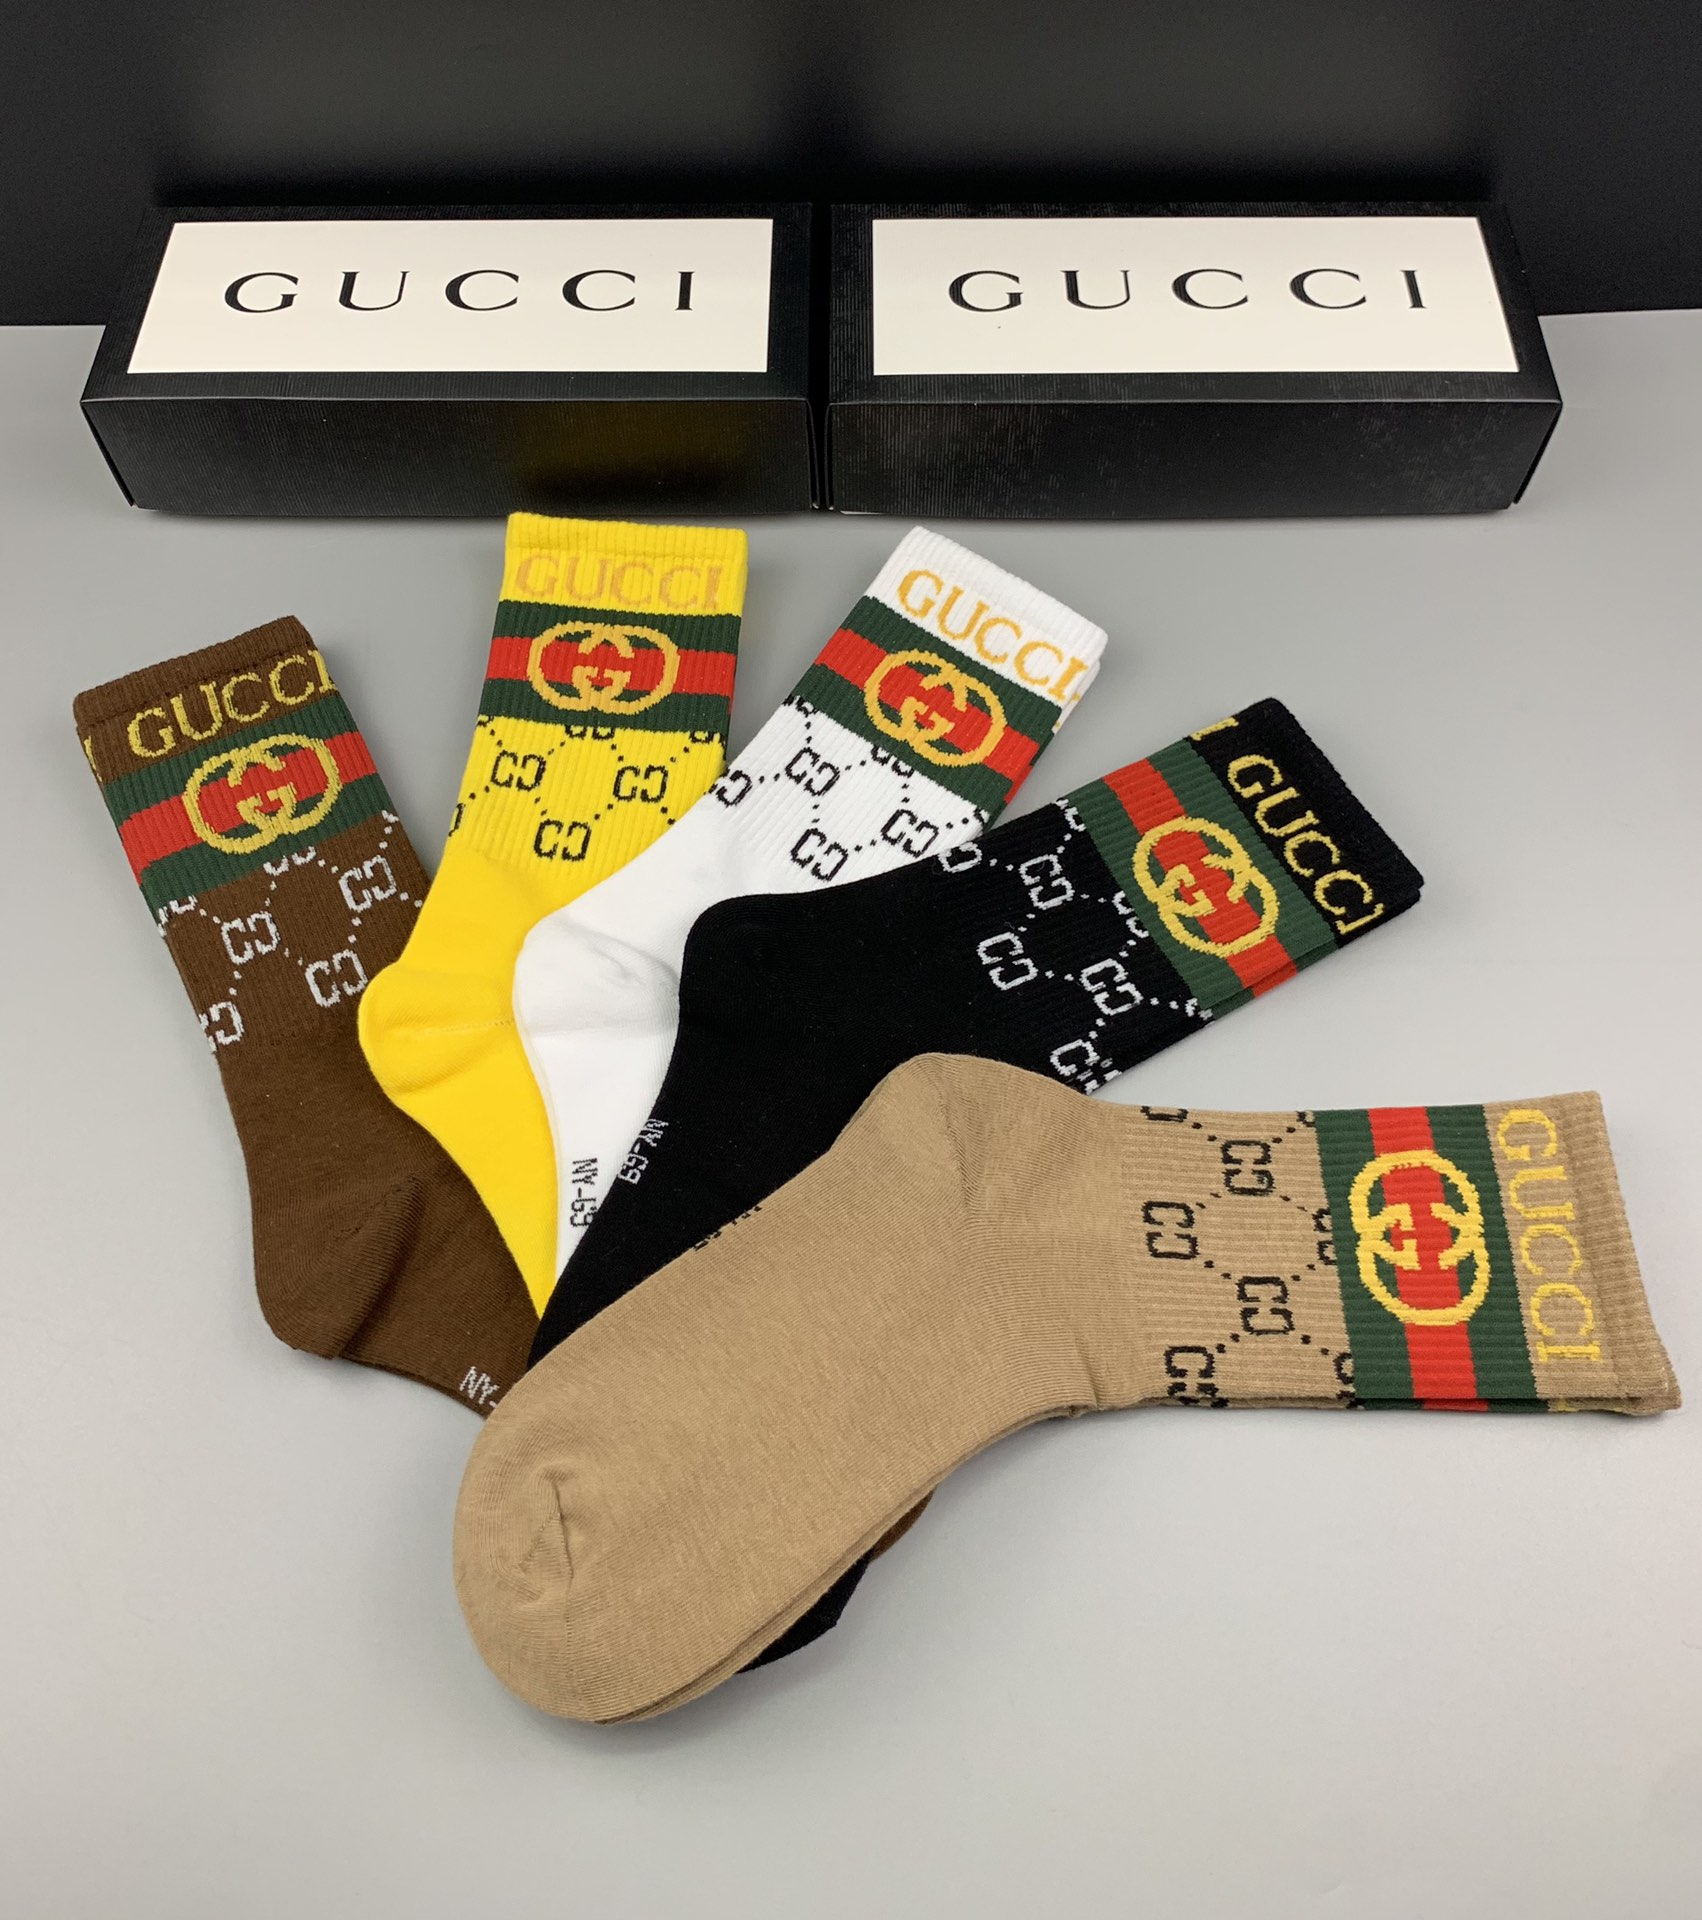 Gucci Logo Cotton Socks Set 5 Pairs # 233512, cheap Socks, only $35!